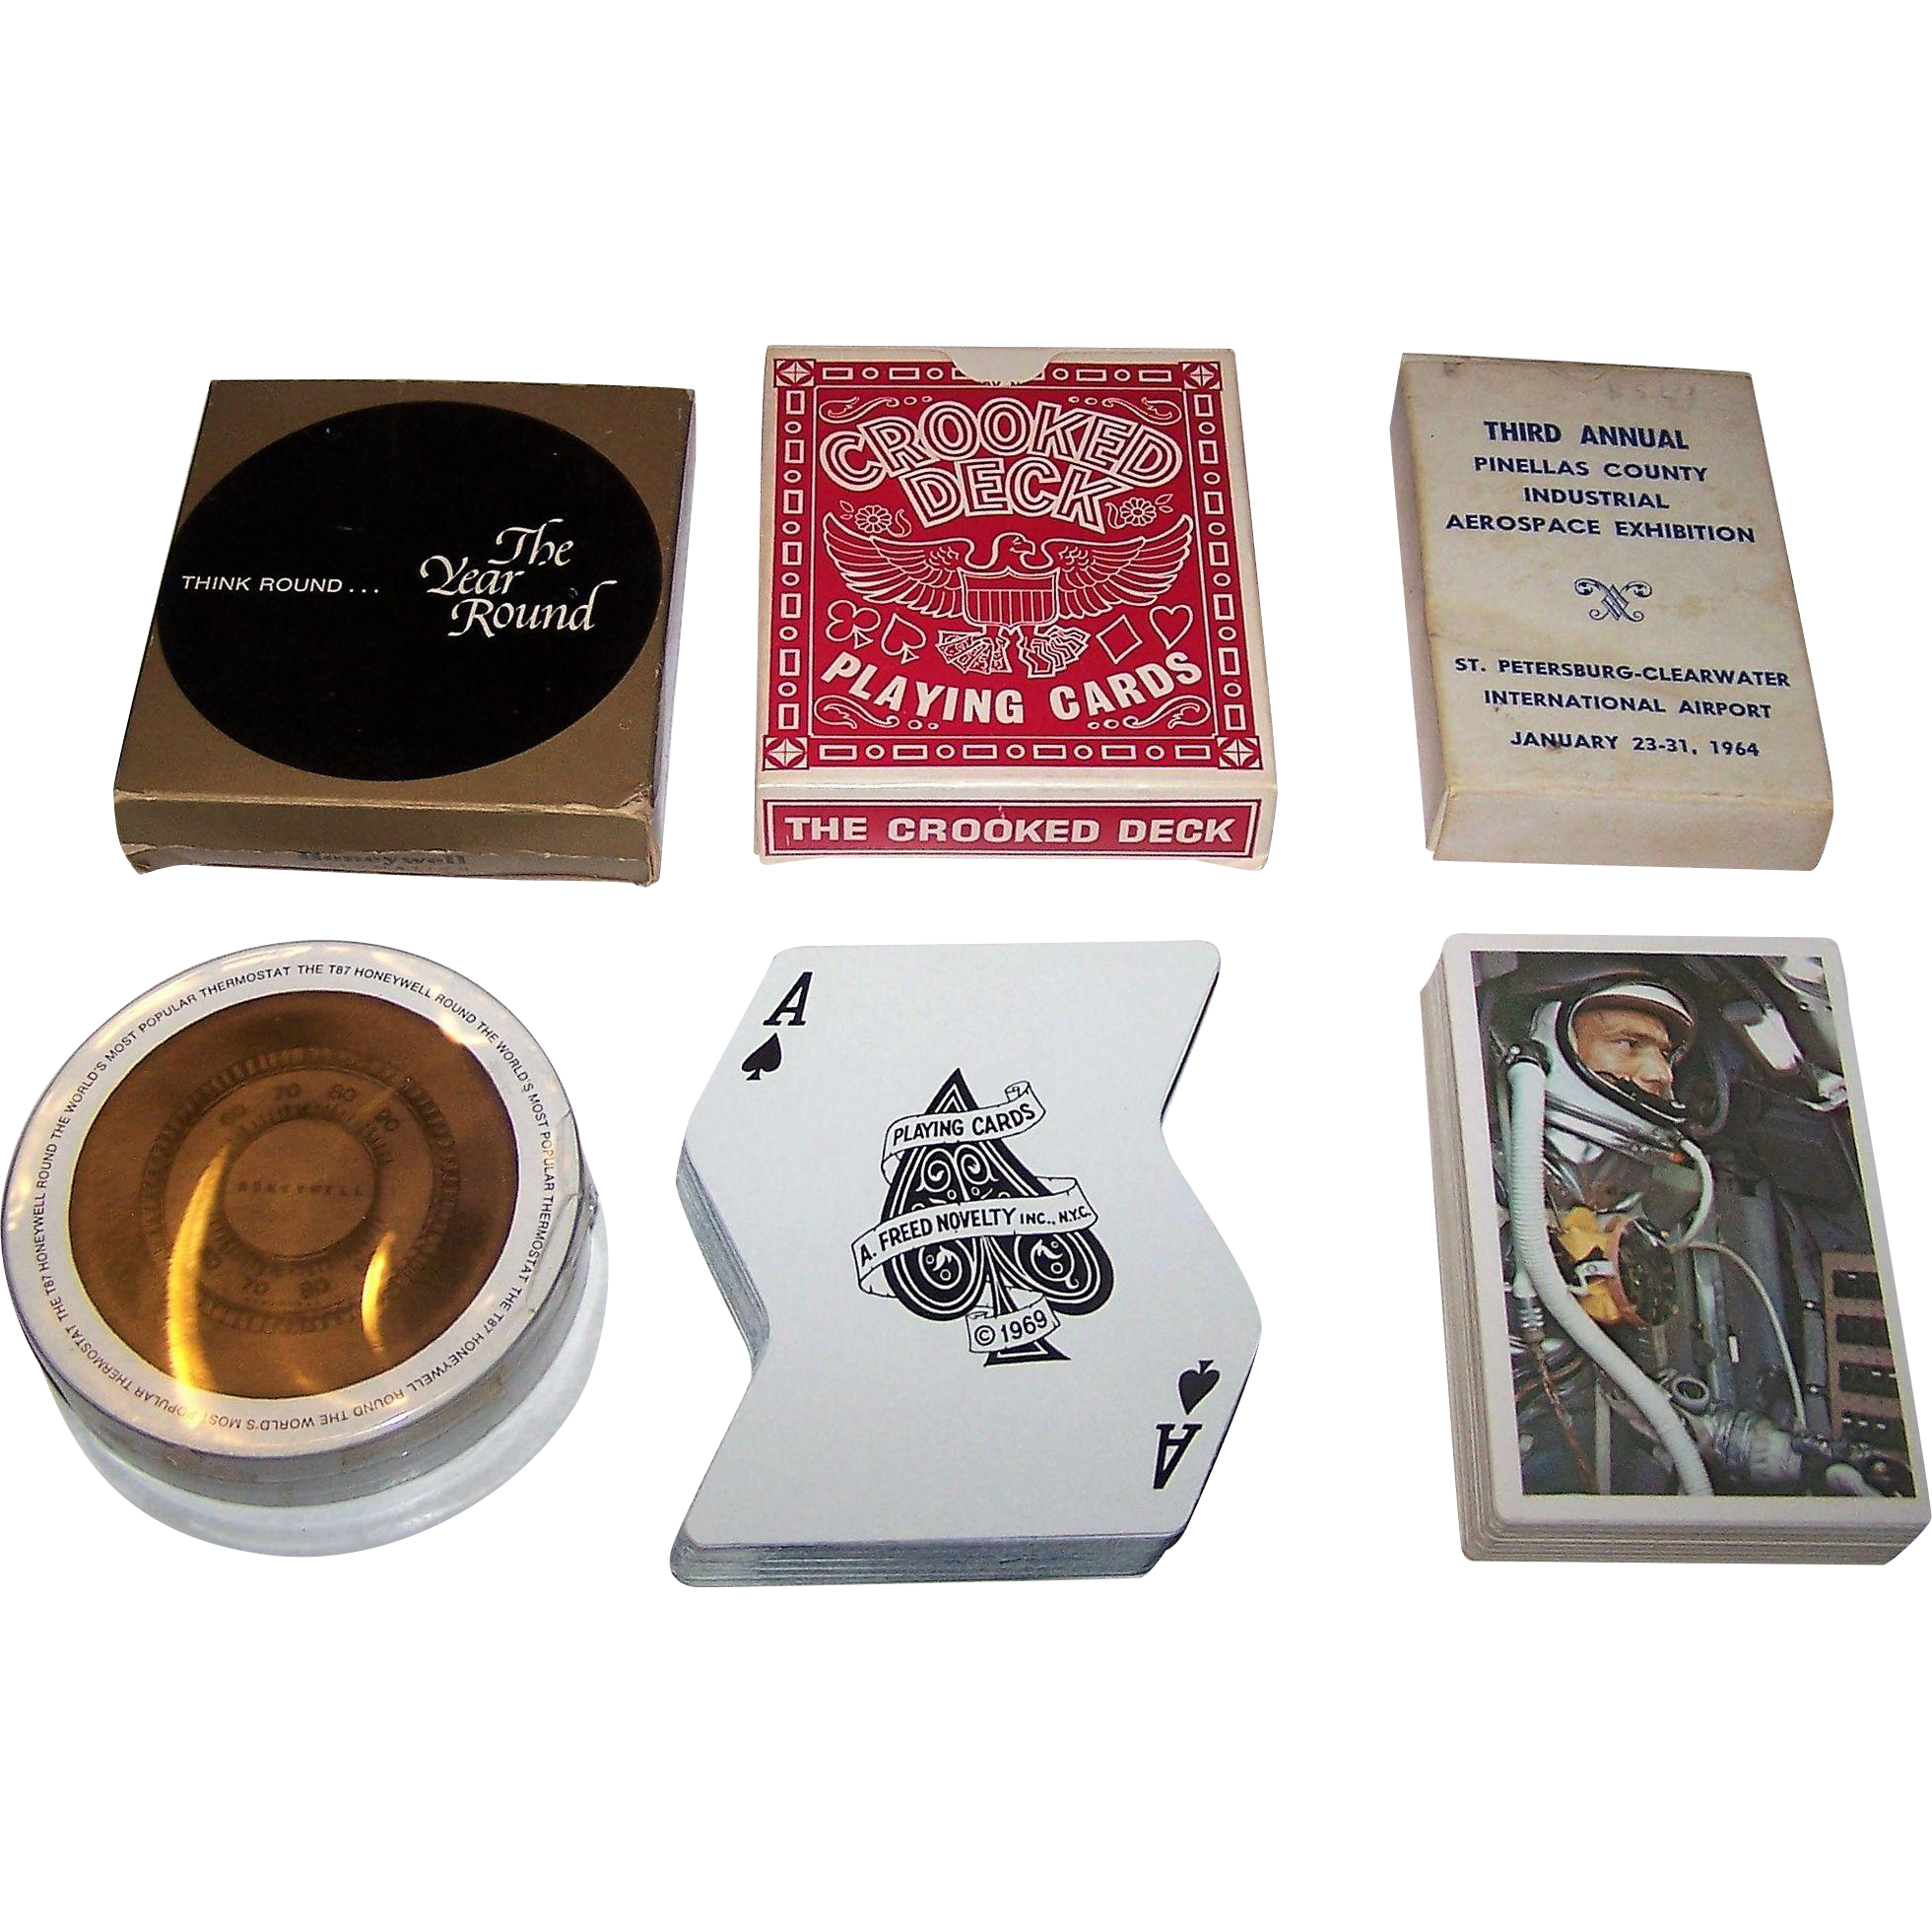 """3 Novelty Decks of Playing Cards, $15/ea.: (i) Honeywell """"The Year Round""""; (ii) A. Freed Novelty, Inc. """"Crooked Deck,"""" c.1969; and (iii) Pinellas County Industry Council """"Third Annual Aerospace Exhibition"""" Playing Cards, 52 Different Backs, c.1964"""